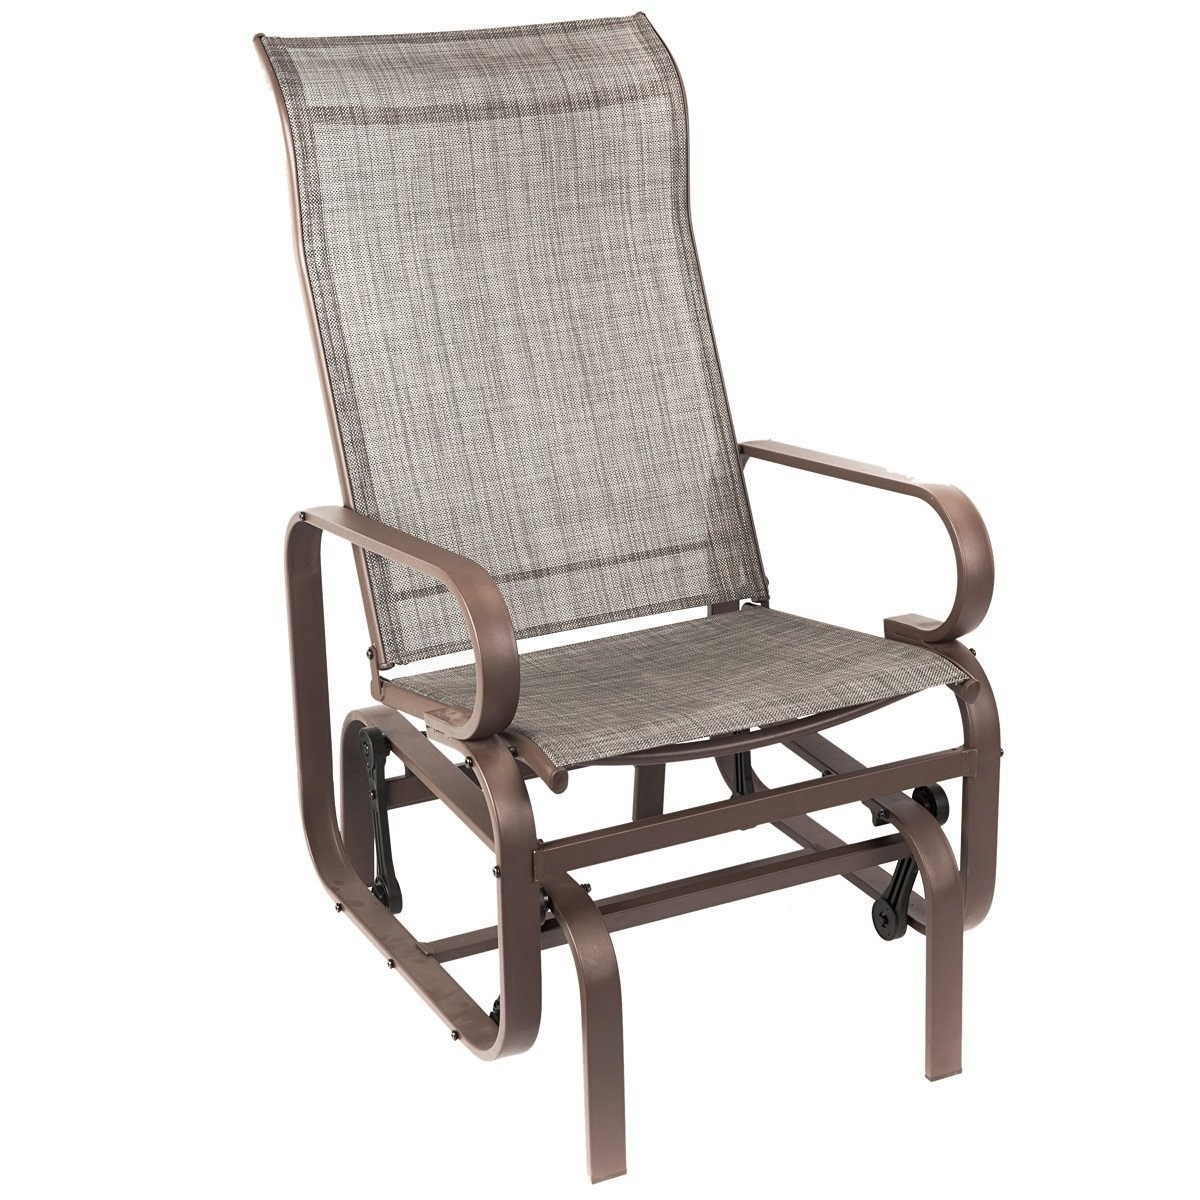 Patio Rocking Chairs And Gliders in Well-liked Glider Chair For Patio - Decco.voiceoverservices.co